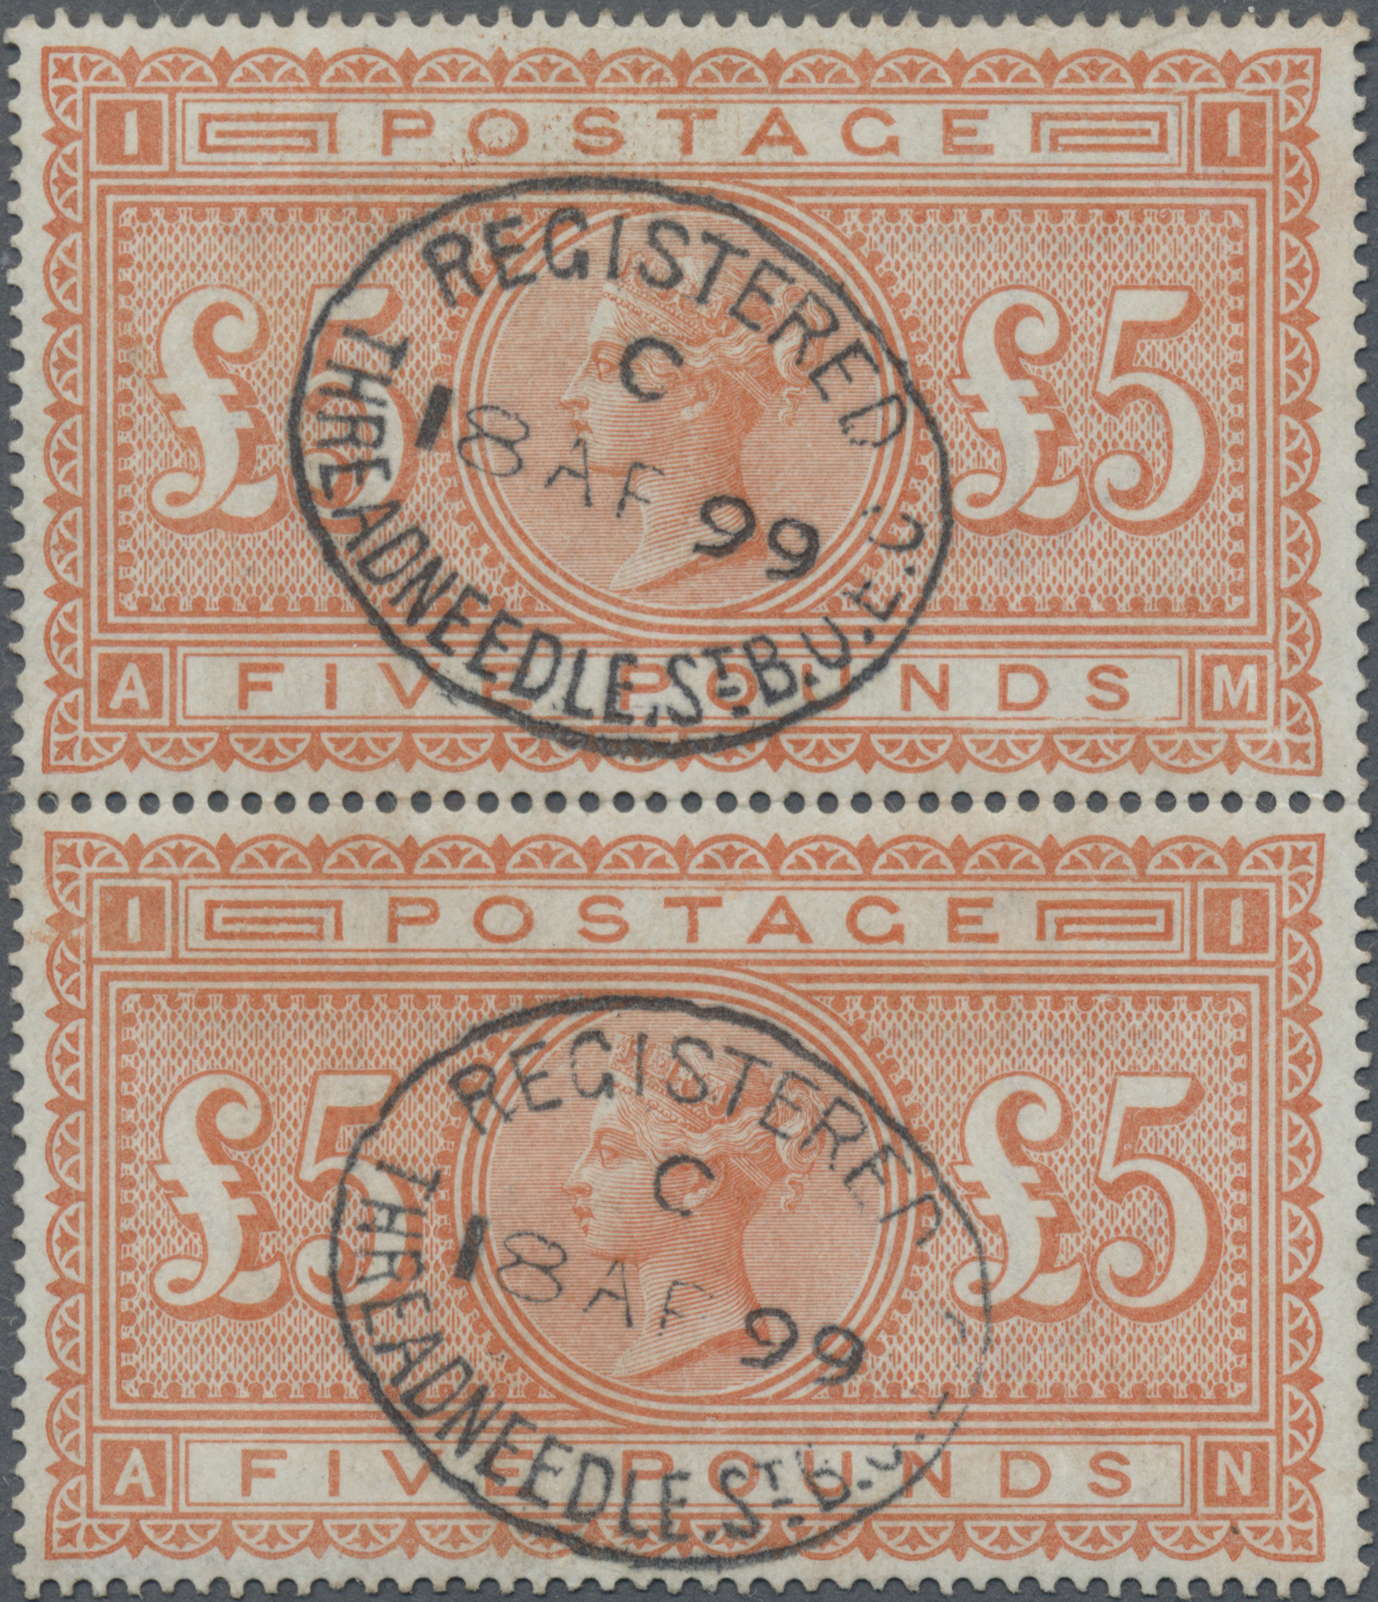 Lot 00002 - großbritannien  -  Auktionshaus Christoph Gärtner GmbH & Co. KG Intenational Rarities and contains lots from the collection of Peter Zgonc